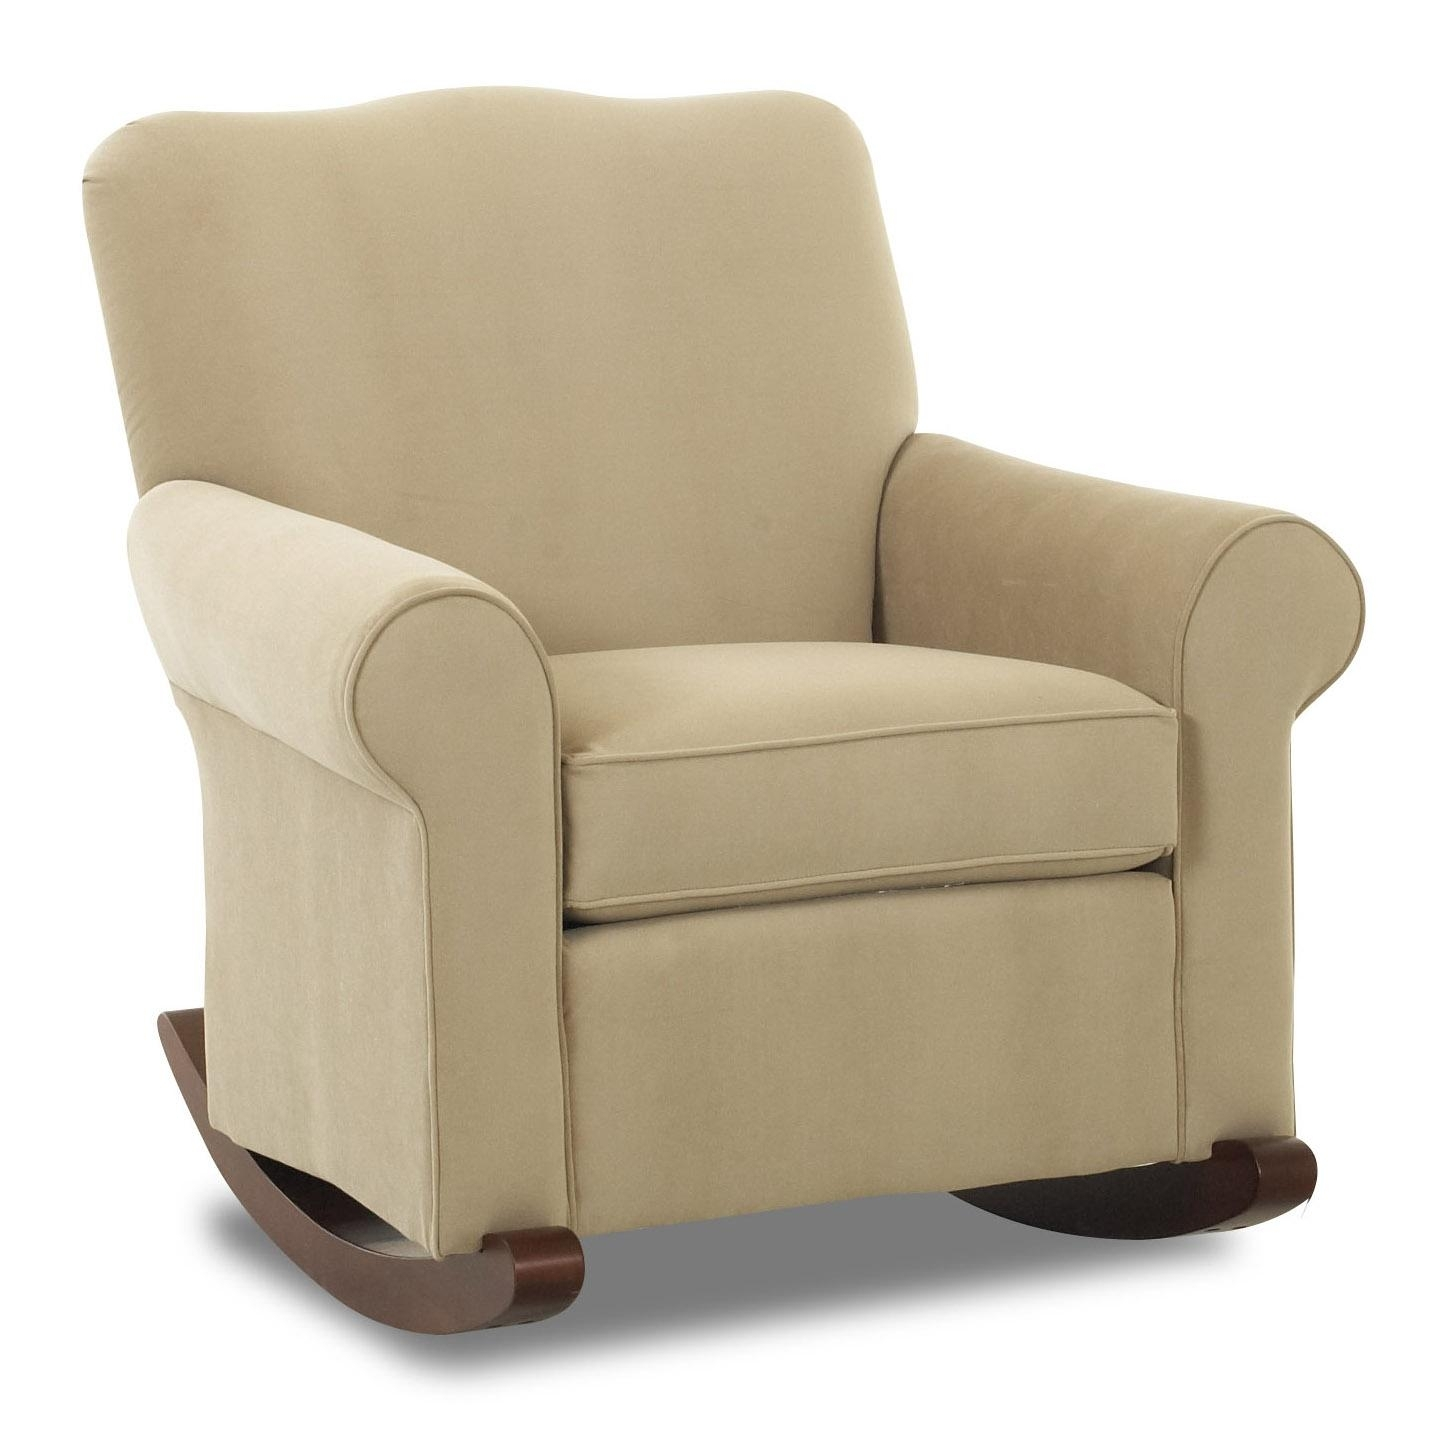 Klaussner Chairs And Accents Old Town Upholstered Rocker | Value Throughout Upholstered Rocking Chairs (#11 of 15)